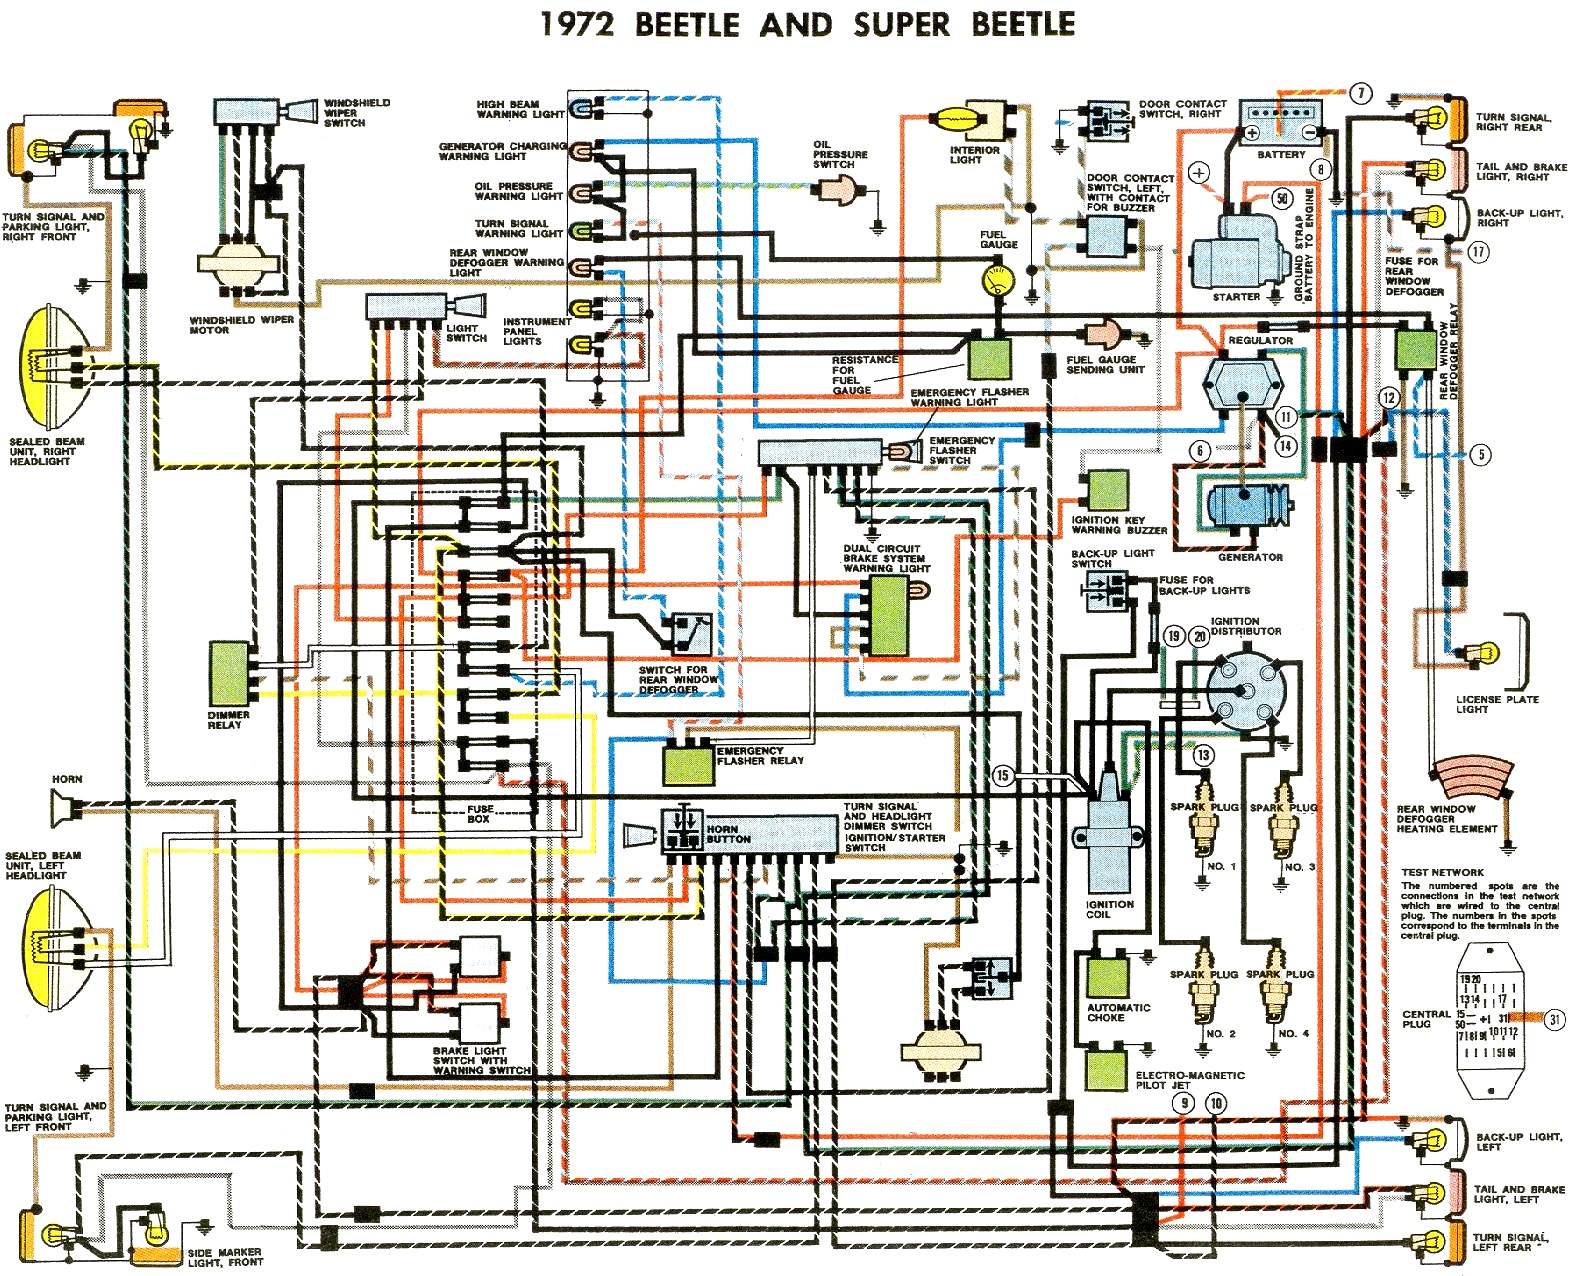 bug_72 1972 beetle wiring diagram thegoldenbug com 1973 vw wiring diagram at pacquiaovsvargaslive.co